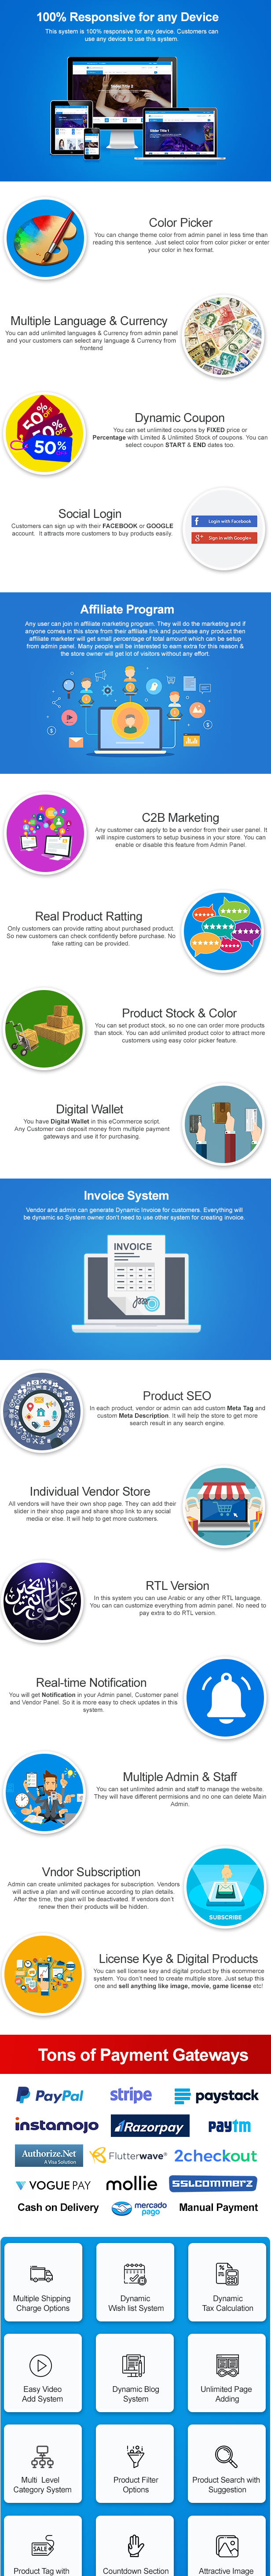 KingCommerce - All in One Single and Multivendor Eommerce Business Management System - 4